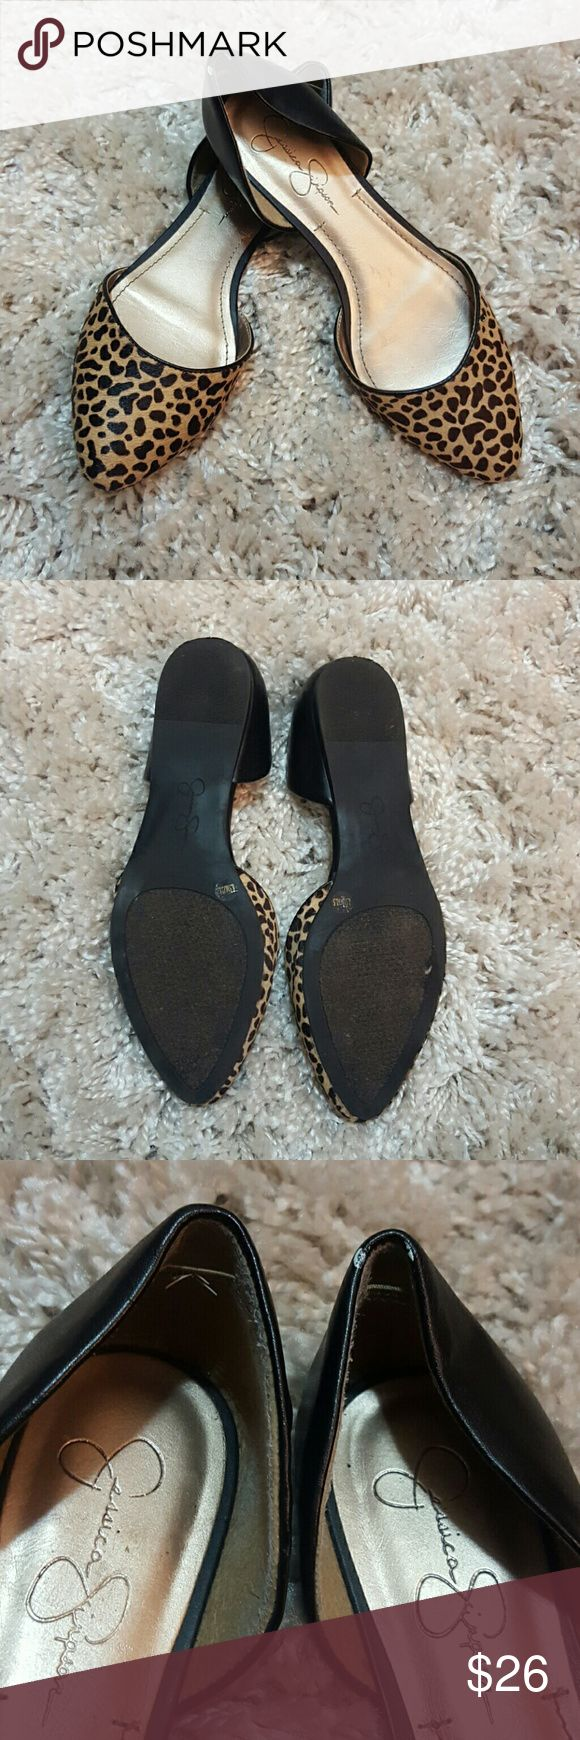 Jessica Simpson Cheetah Fur Print Flats In good condition despite wear on the soles, heels, and inside.  Feel free to make me an offer! Jessica Simpson Shoes Flats & Loafers